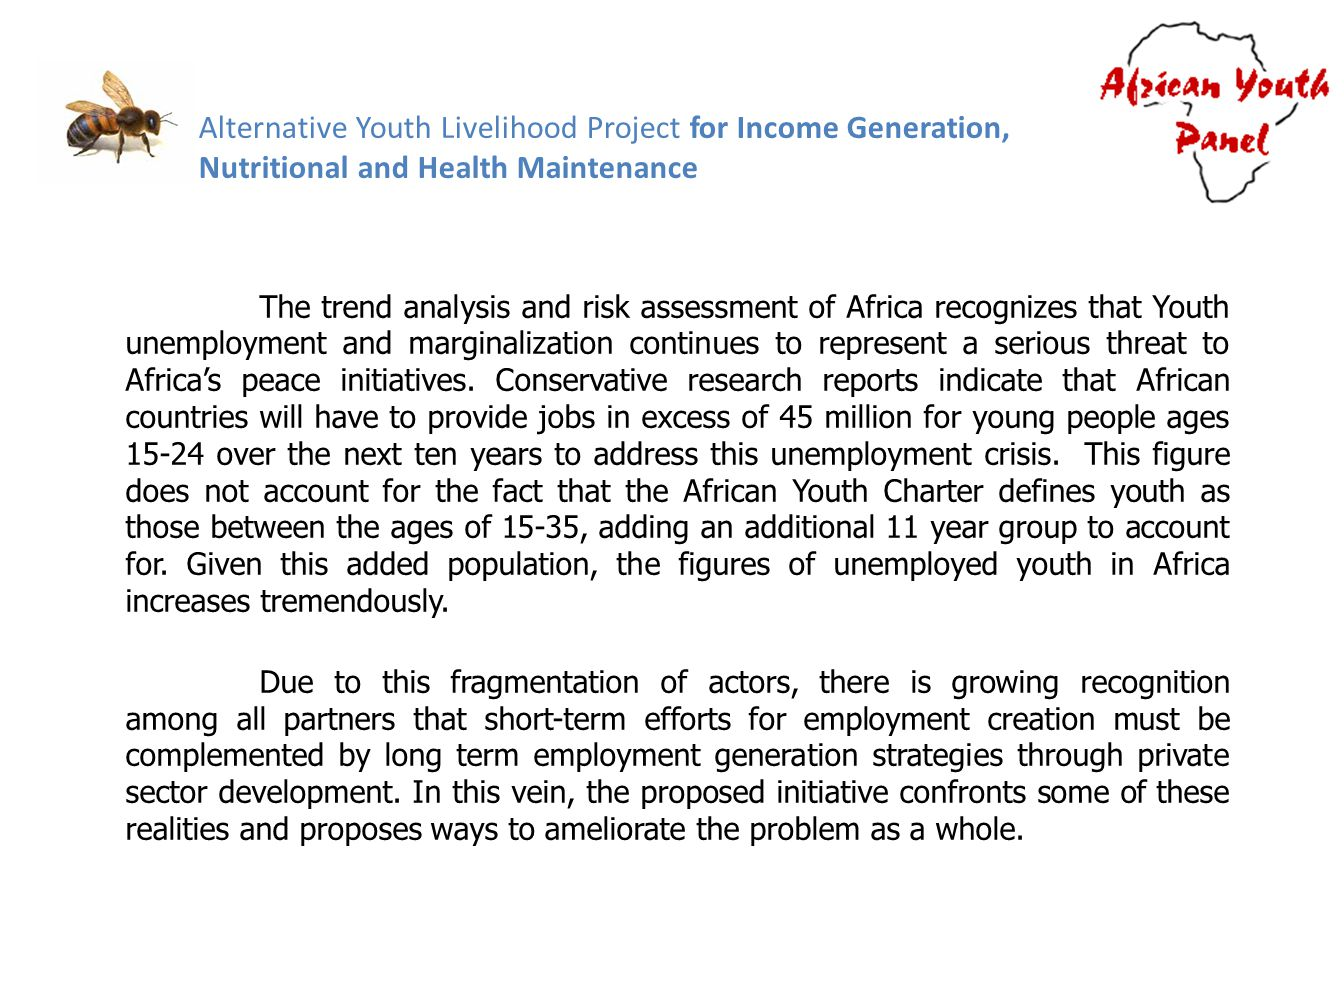 Alternative Youth Livelihood Project for Income Generation, Nutritional and Health Maintenance